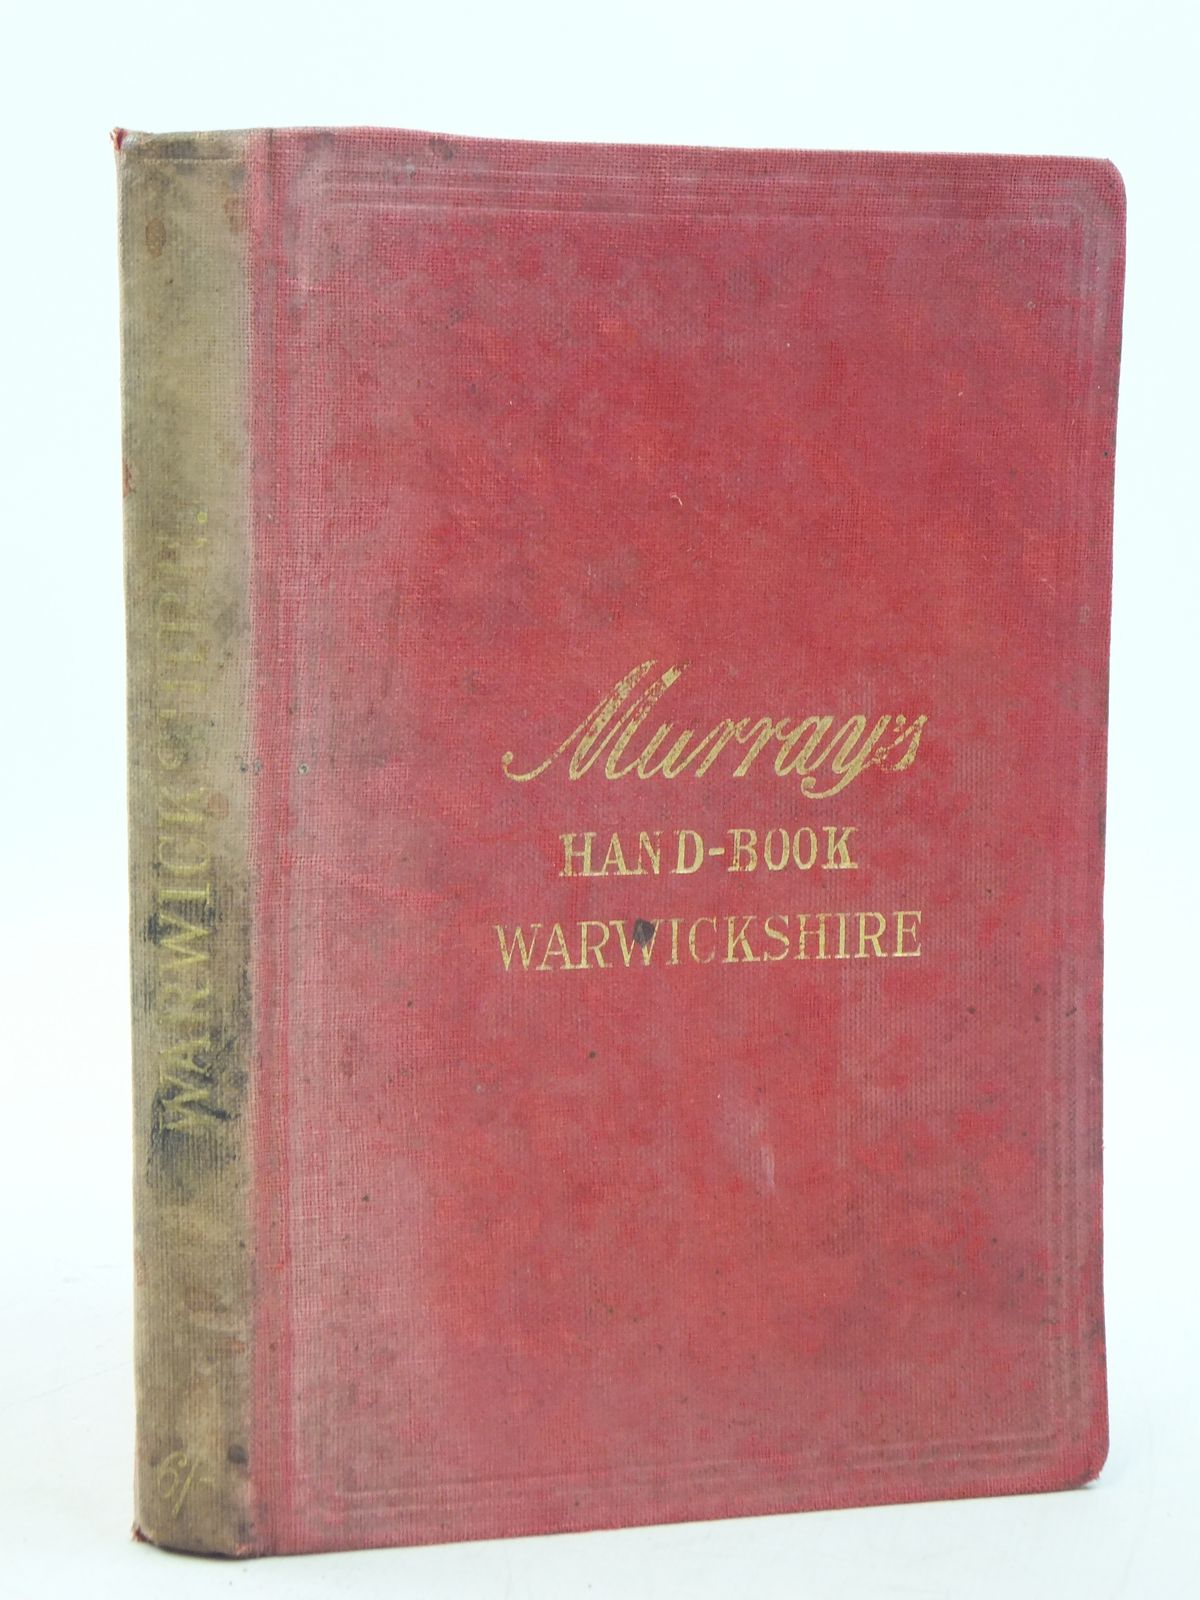 Photo of A HANDBOOK OF WARWICKSHIRE published by John Murray (STOCK CODE: 1605463)  for sale by Stella & Rose's Books